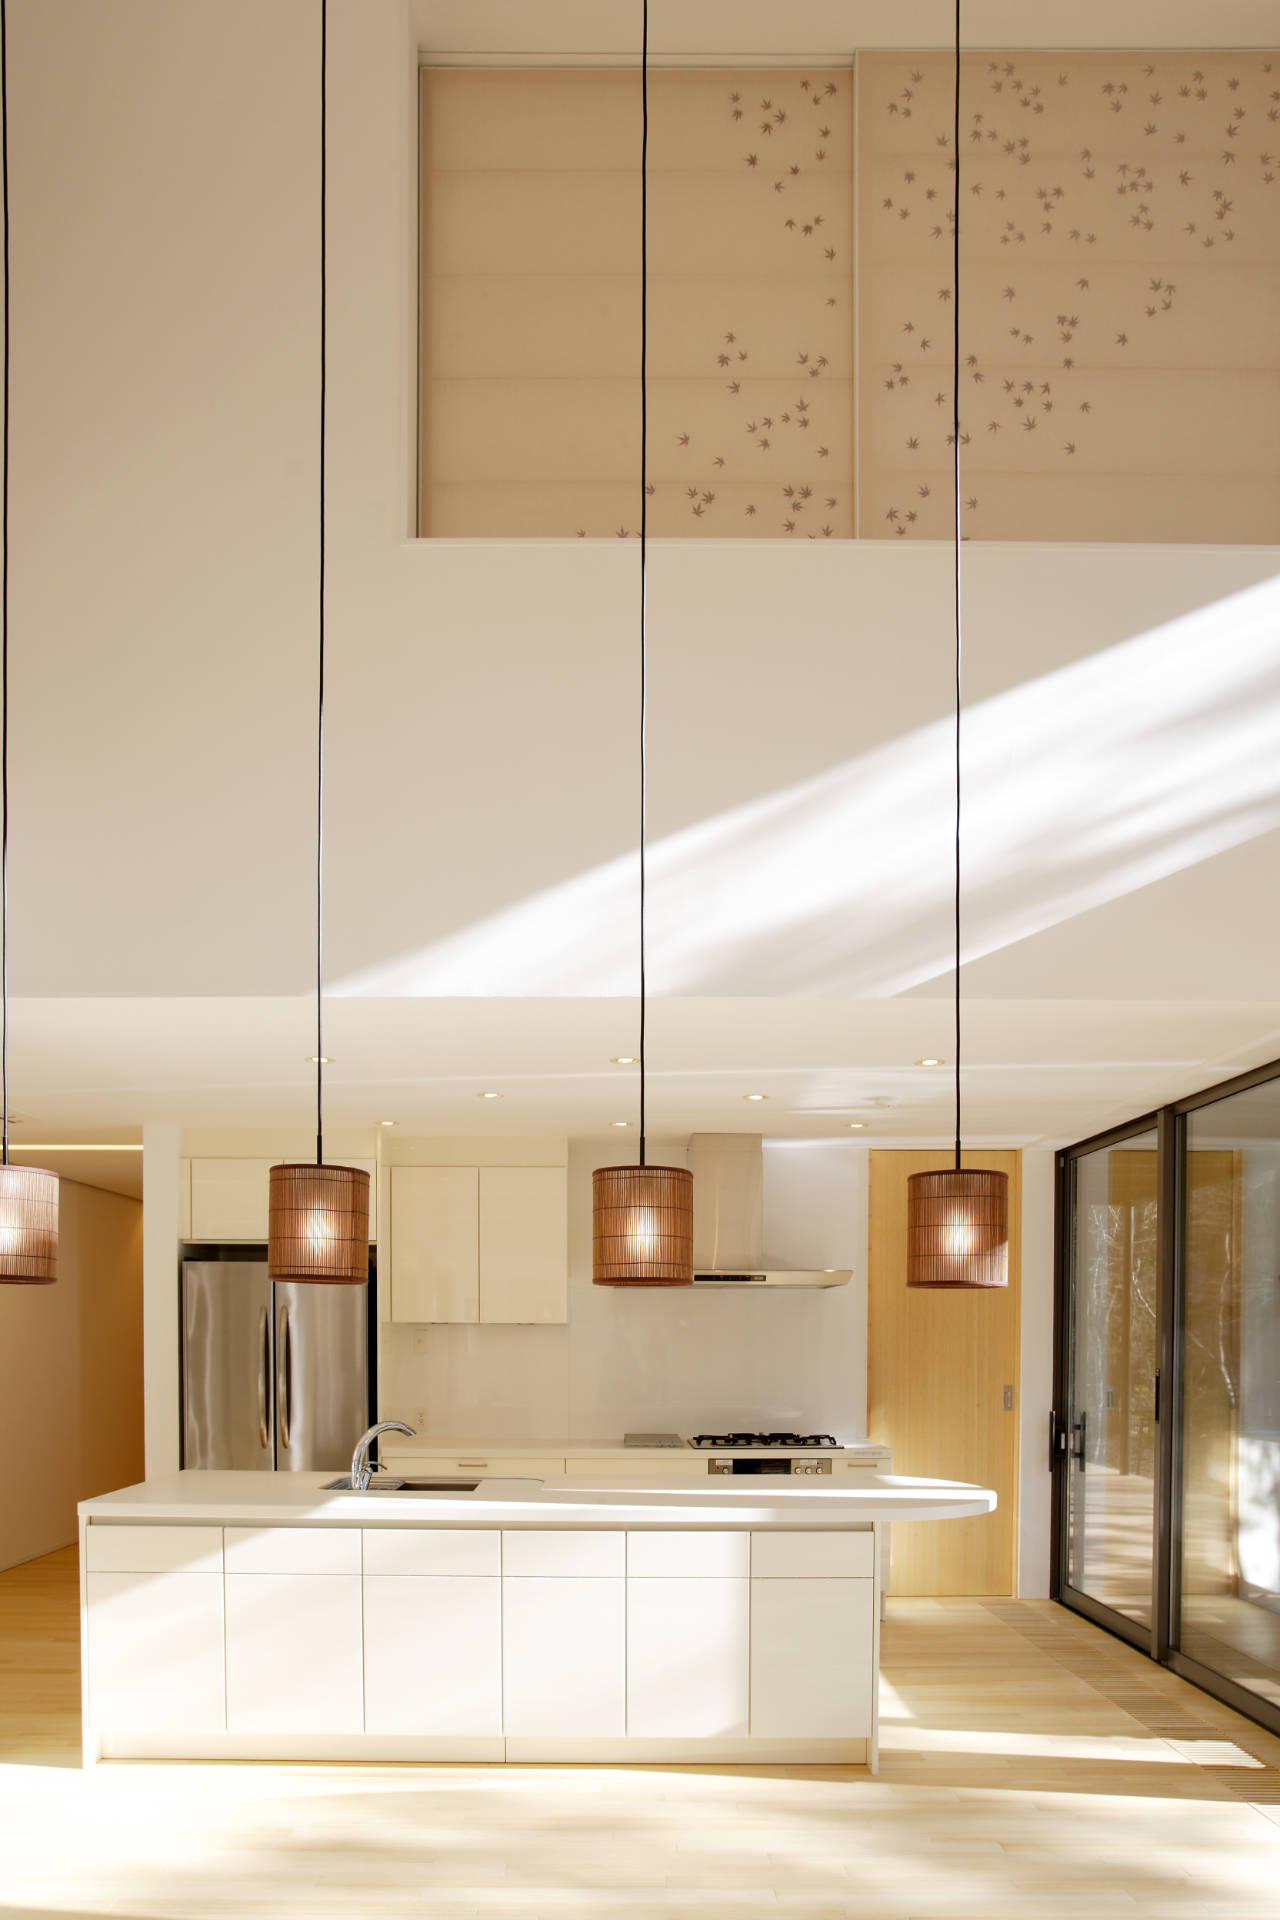 Bleached floors and white kitchen kitchen pinterest for Bleached maple kitchen cabinets